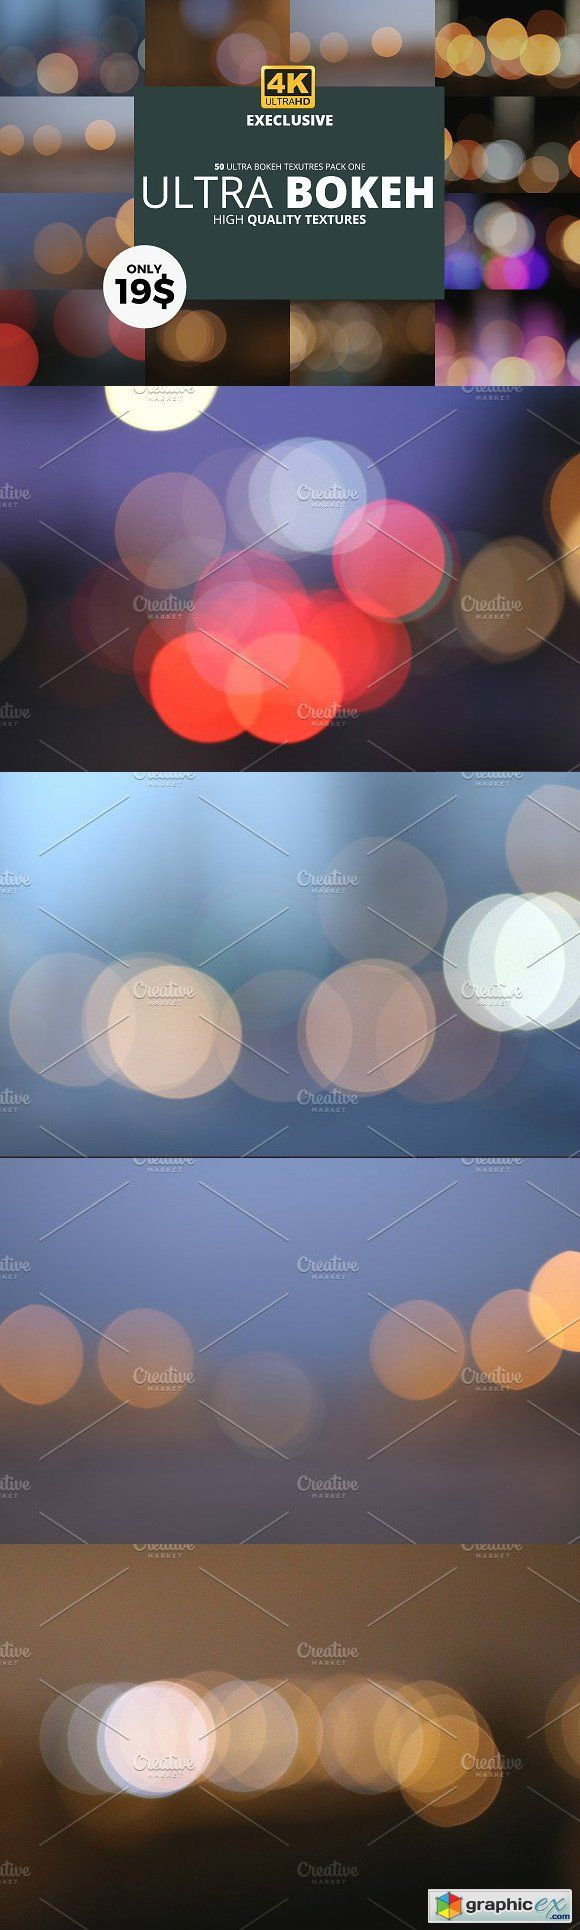 50 Ultra 4K Bokeh Textures Pack One  stock images